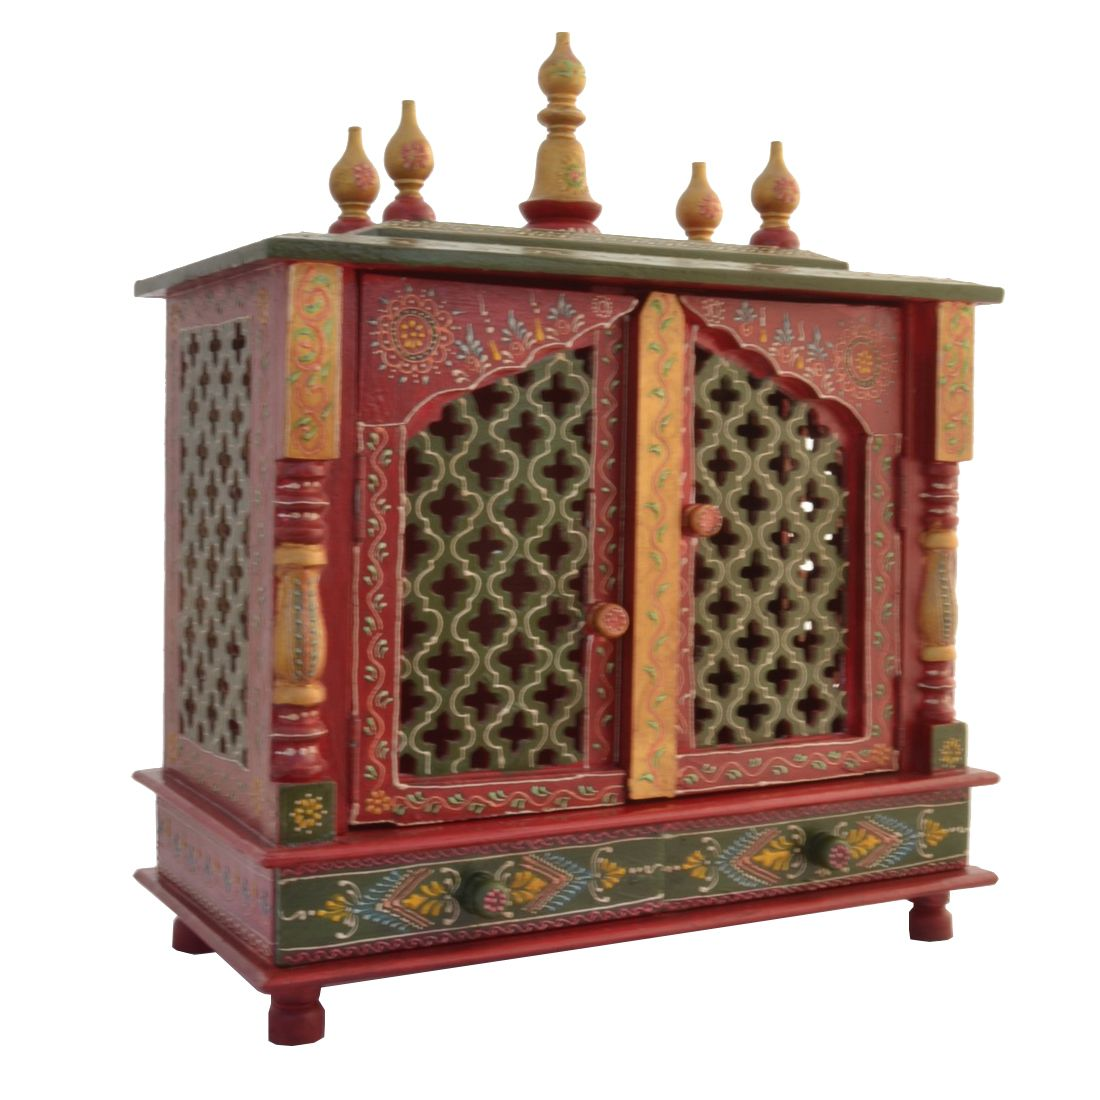 Jodhpur Handicrafts Red Wood Hanging Mandir  Buy Jodhpur Handicrafts Red  Wood Hanging Mandir at Best Price in India on Snapdeal 4464bc1b8